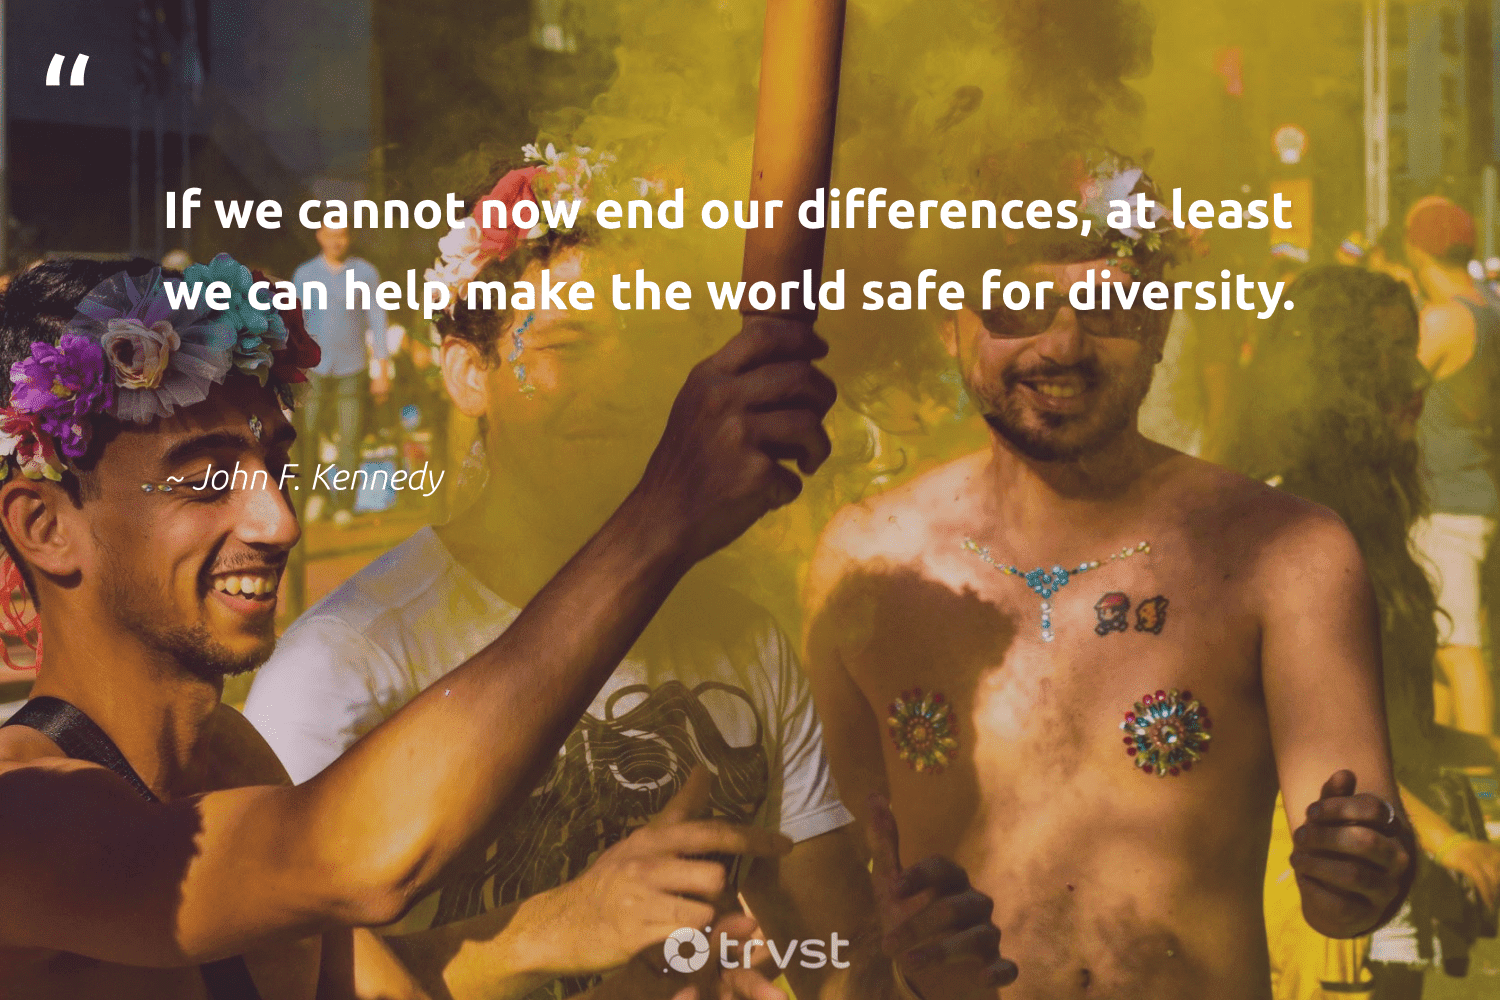 """""""If we cannot now end our differences, at least we can help make the world safe for diversity.""""  - John F. Kennedy #trvst #quotes #diversity #representationmatters #discrimination #socialchange #giveback #bethechange #inclusion #socialgood #makeadifference #dotherightthing"""